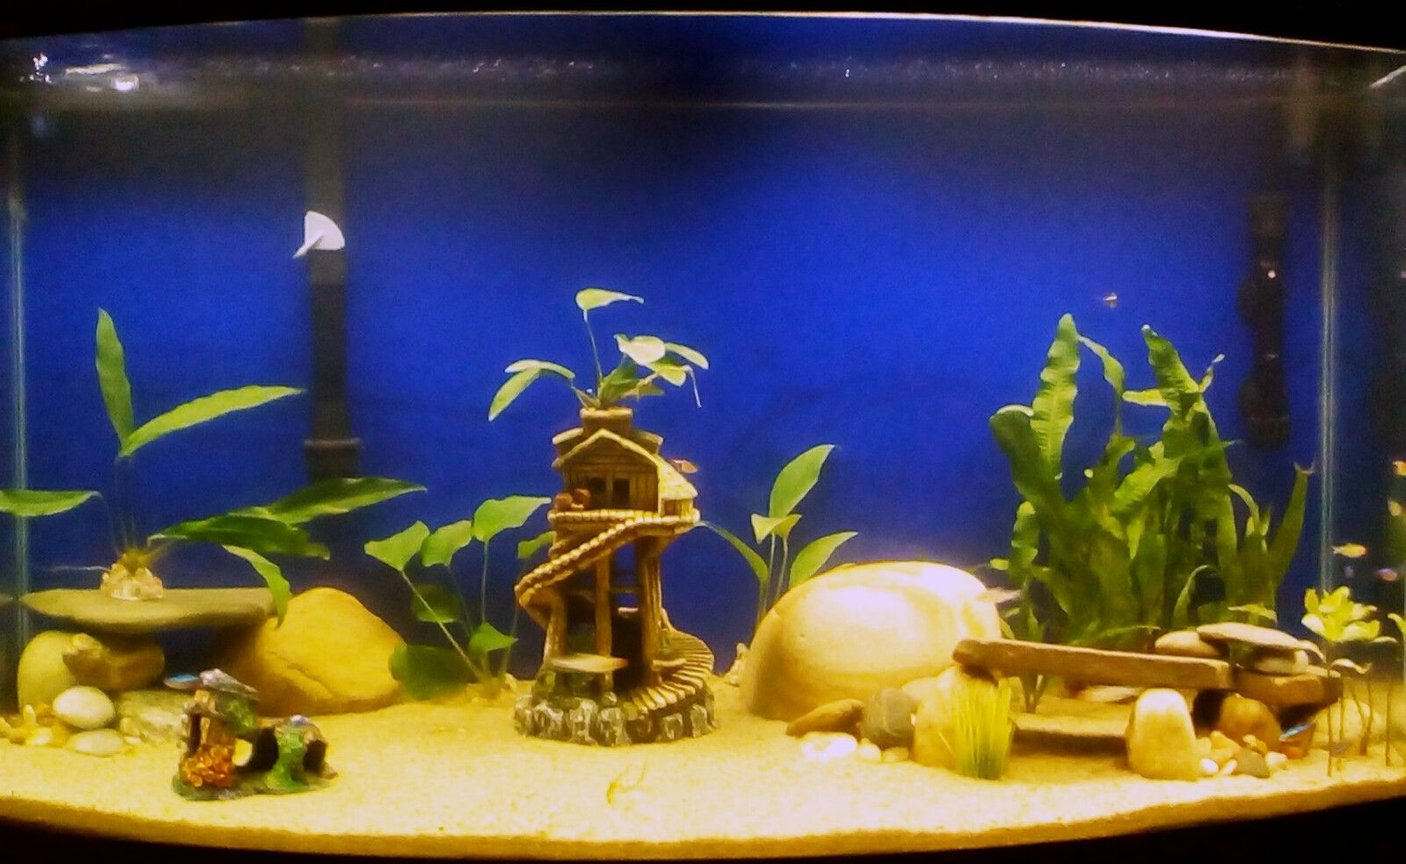 fish tank picture - Full view of my 46gal Bowfront Tank. Fish just waking up.